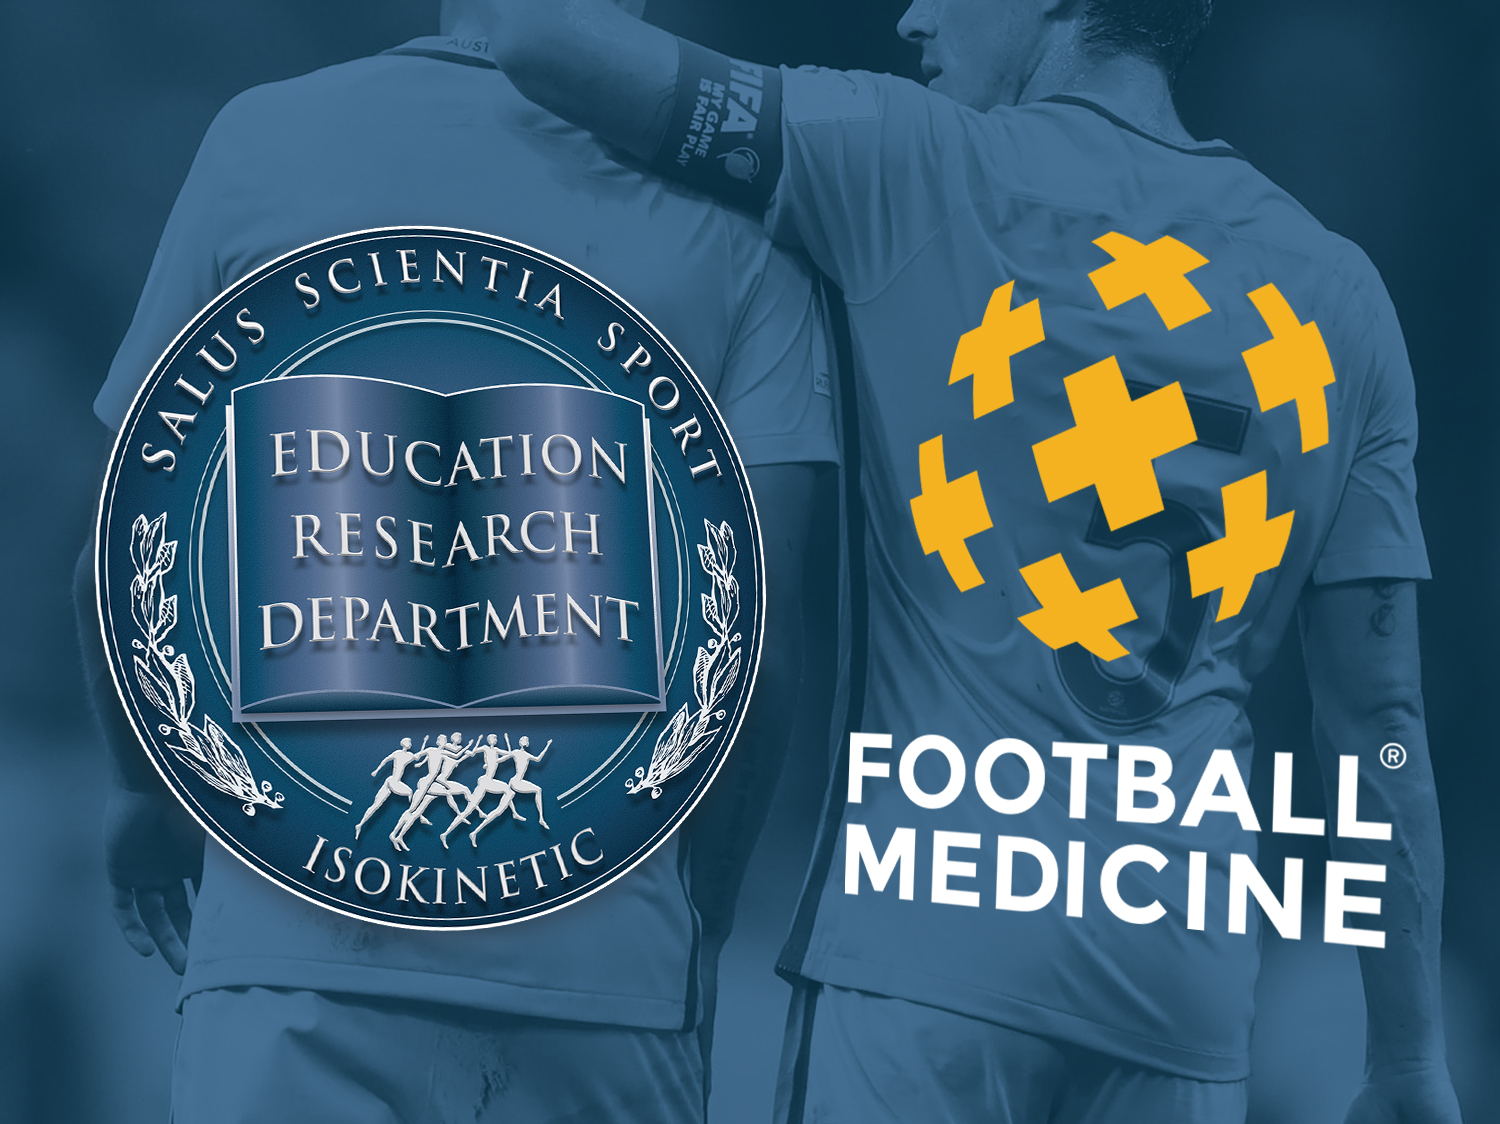 Together to improve and spread the knowledge of Sports Medicine in Football